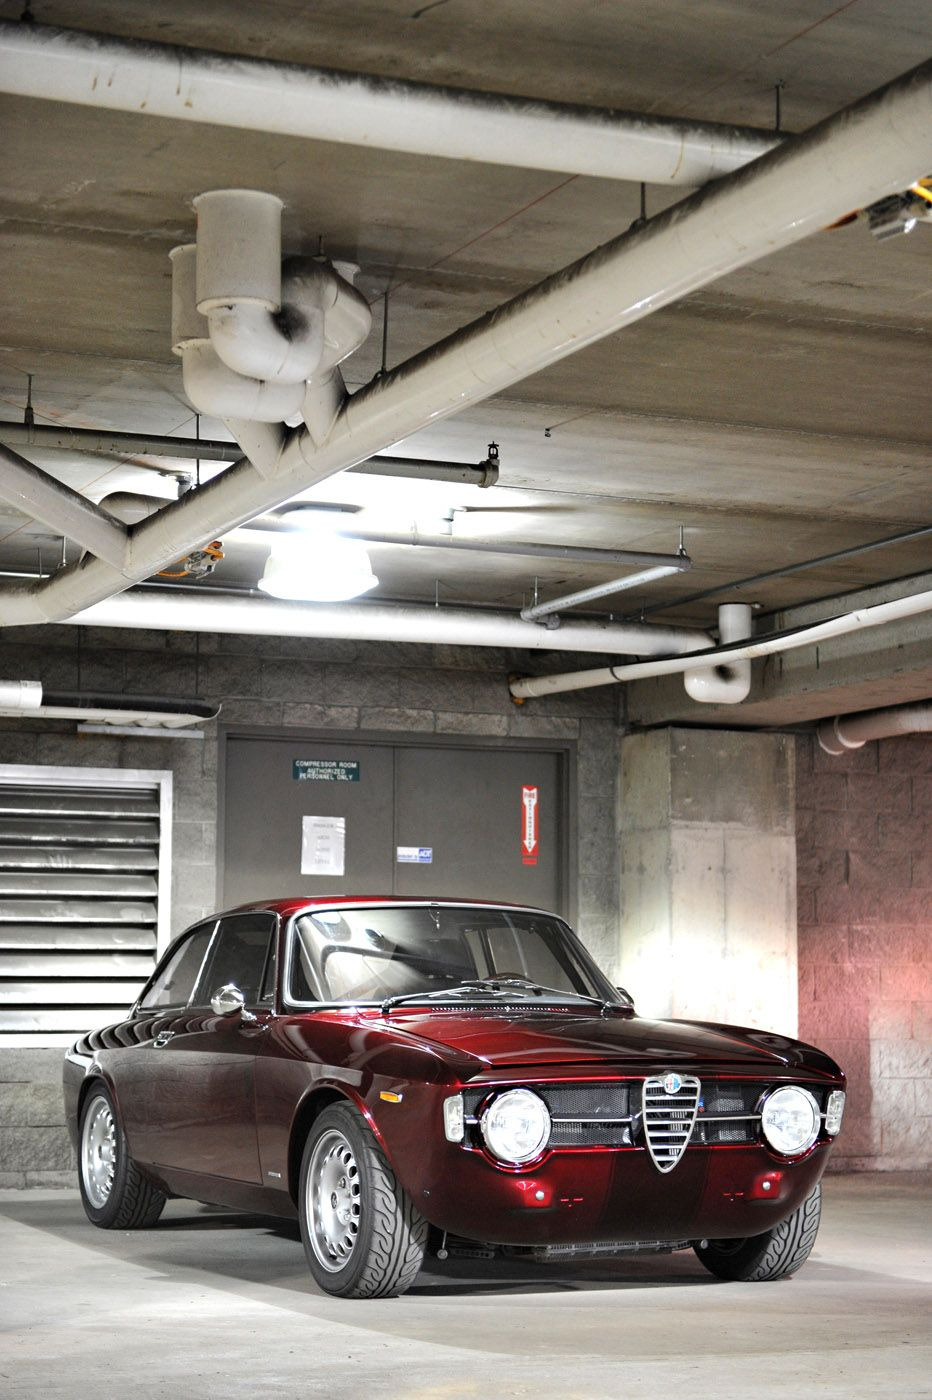 This Alfa Romeo Gt 1300 Junior Is For Life Four Wheels Pinterest 159 Workshop Manual Download Photography By Lucas Scarfone Alfaromeo Italiancars Automobiliahq